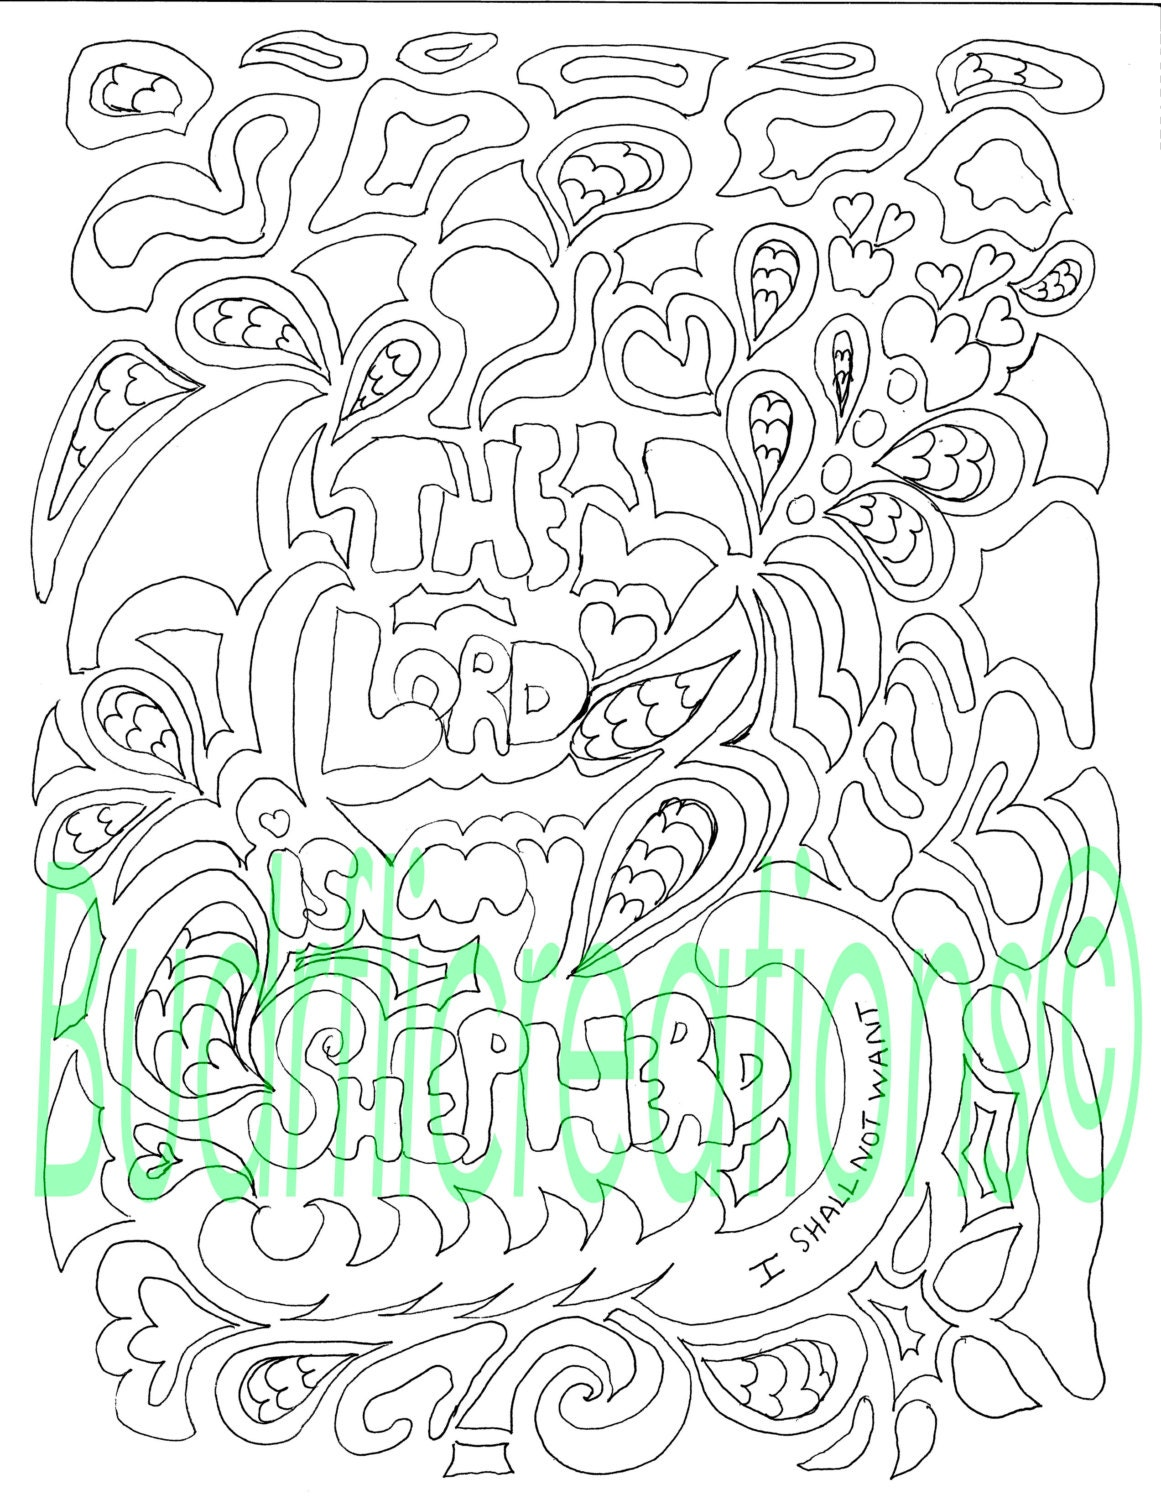 Psalms 23 The Lord is My Shepherd Adult Coloring Page Digital | Etsy